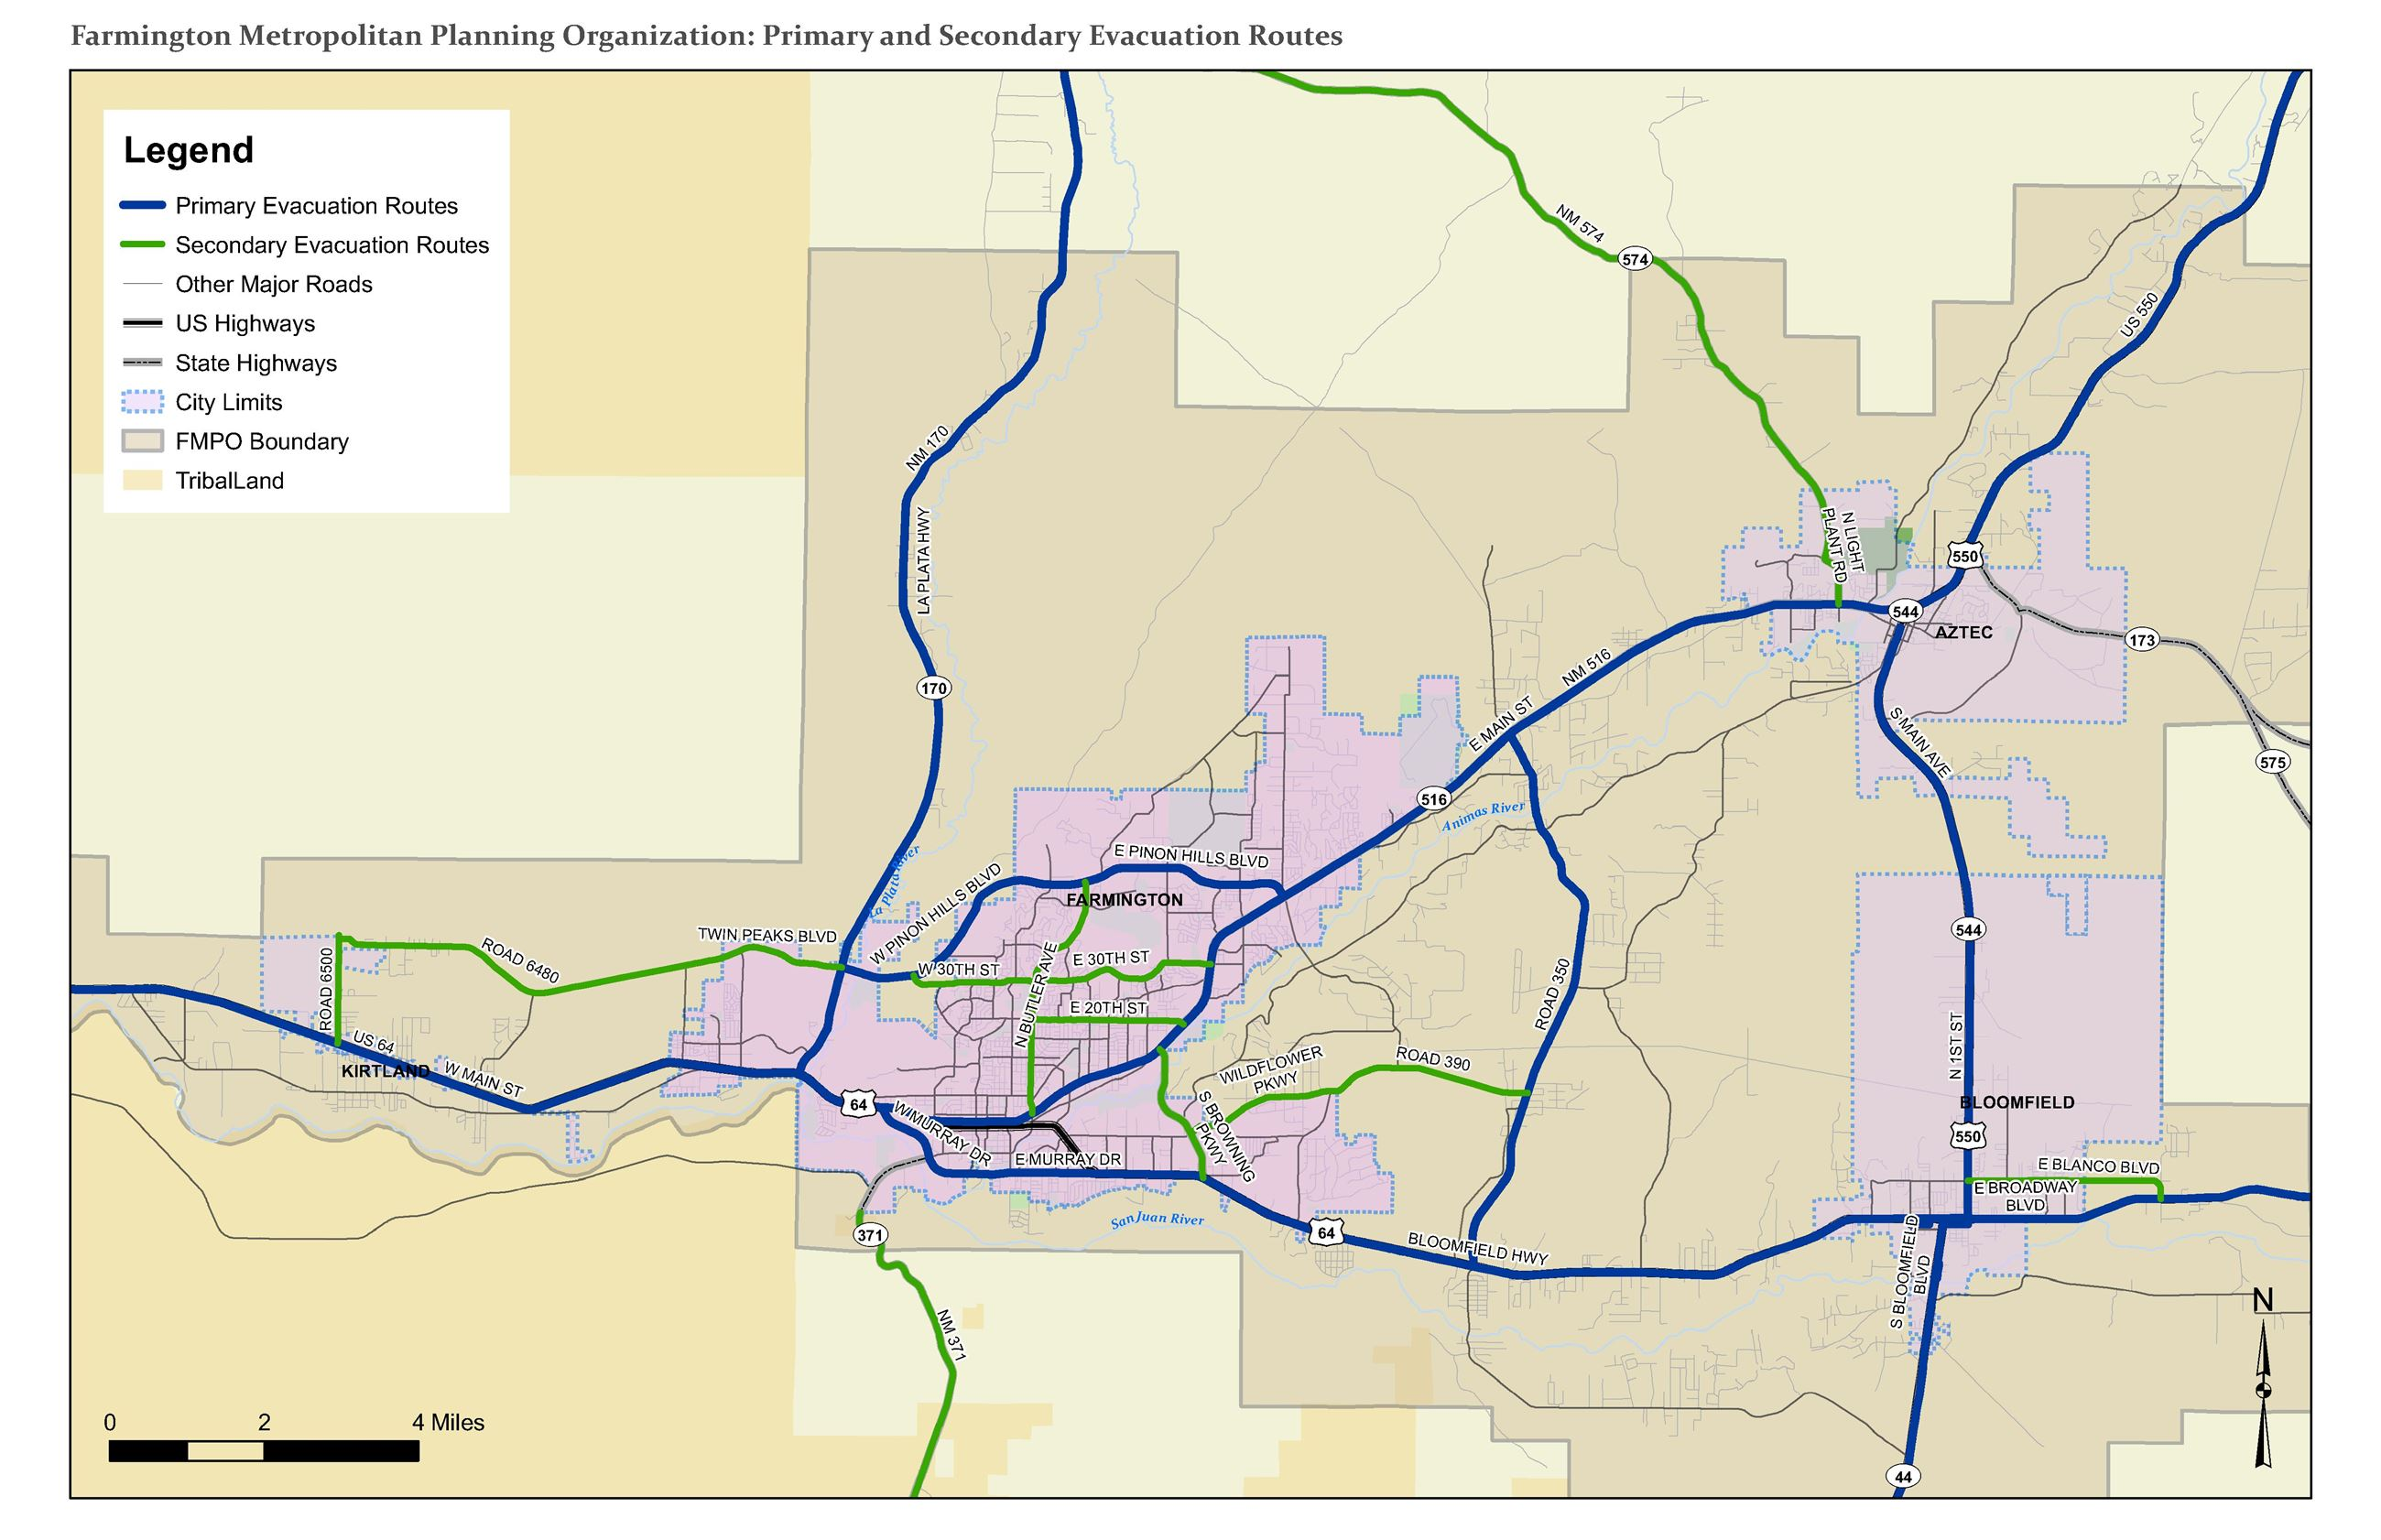 Map - Primary and Secondary Evacuation Routes Opens in new window